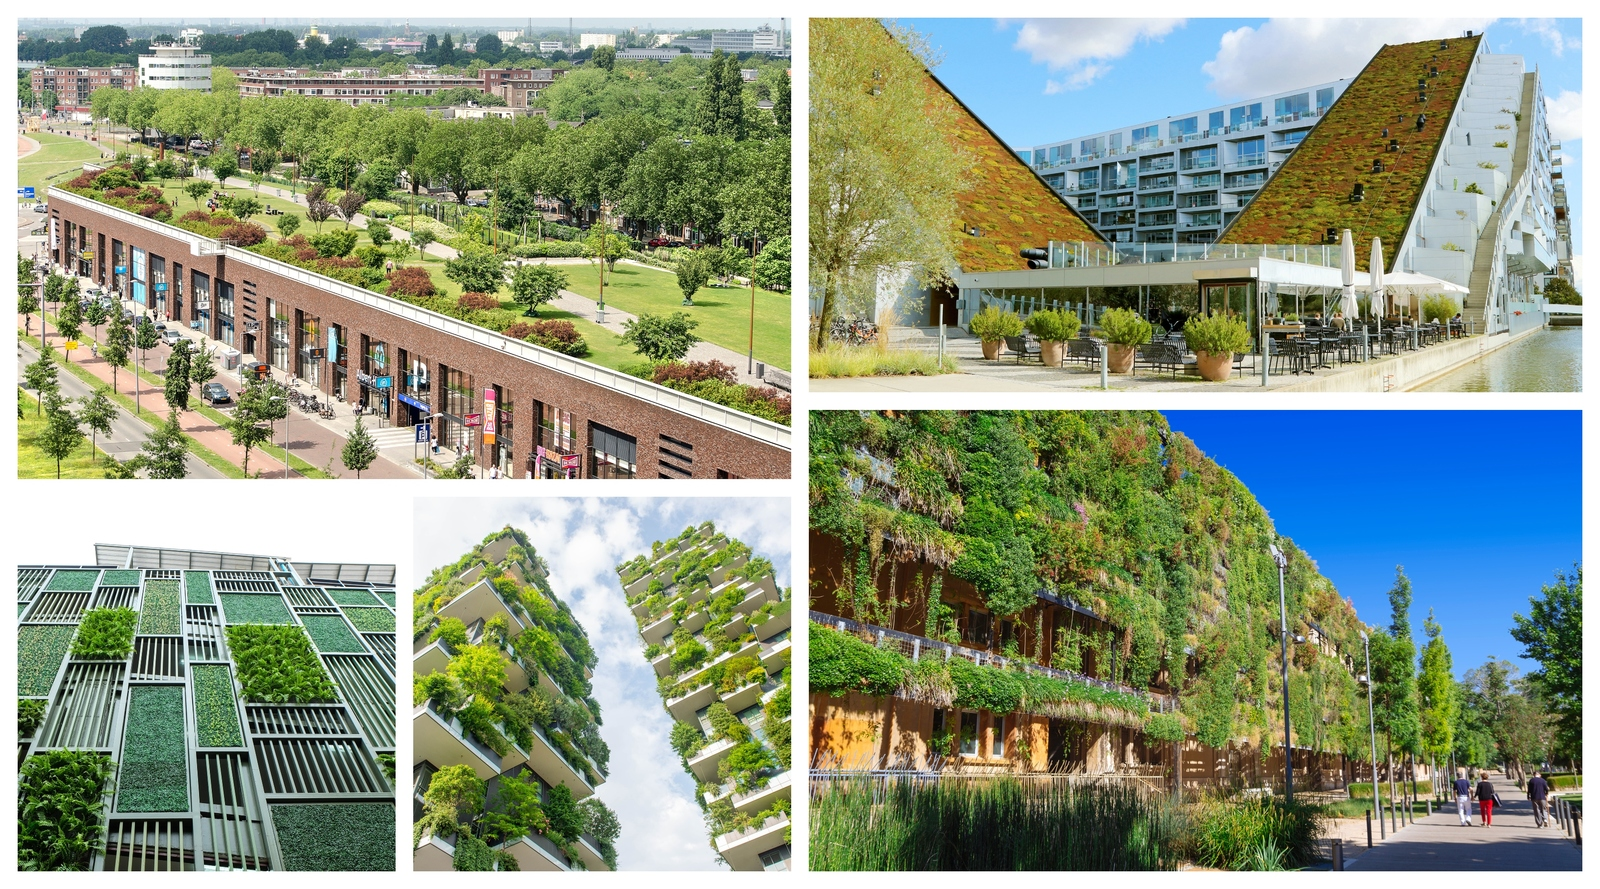 green gardens Europea 2020 collage.jpg